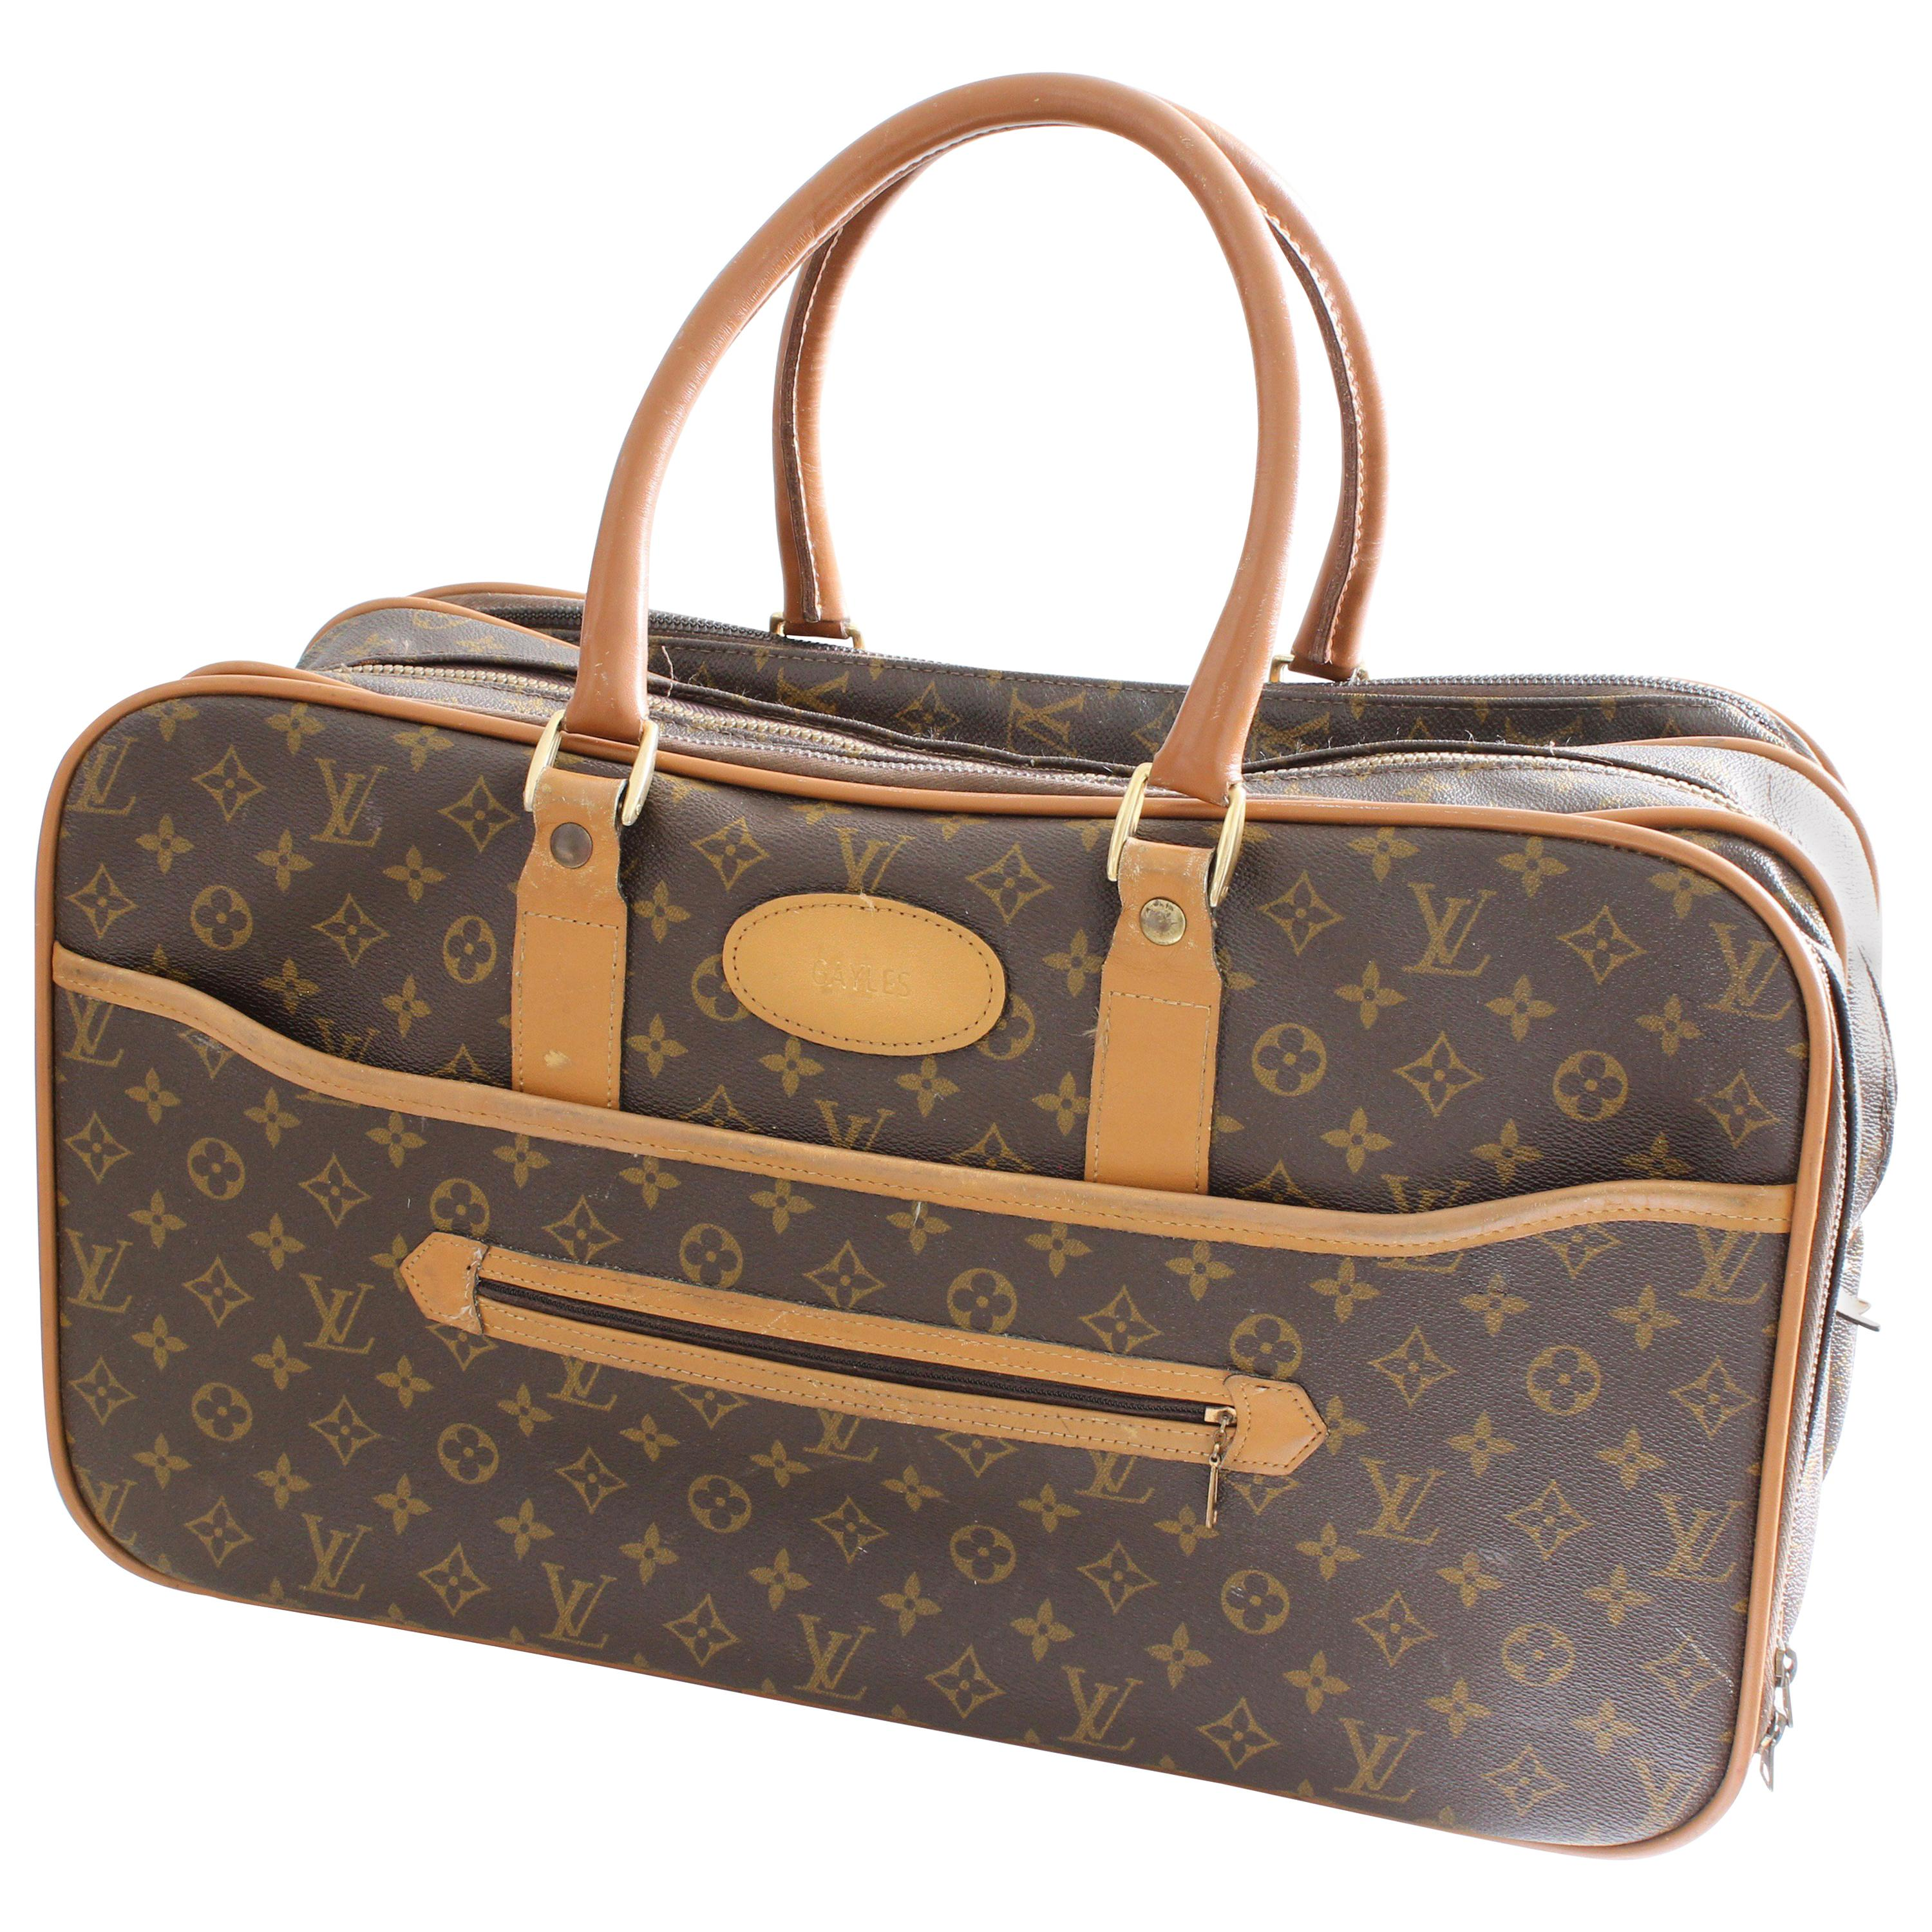 858fcd339784 Vintage and Designer Luggage and Travel Bags - 593 For Sale at 1stdibs -  Page 7